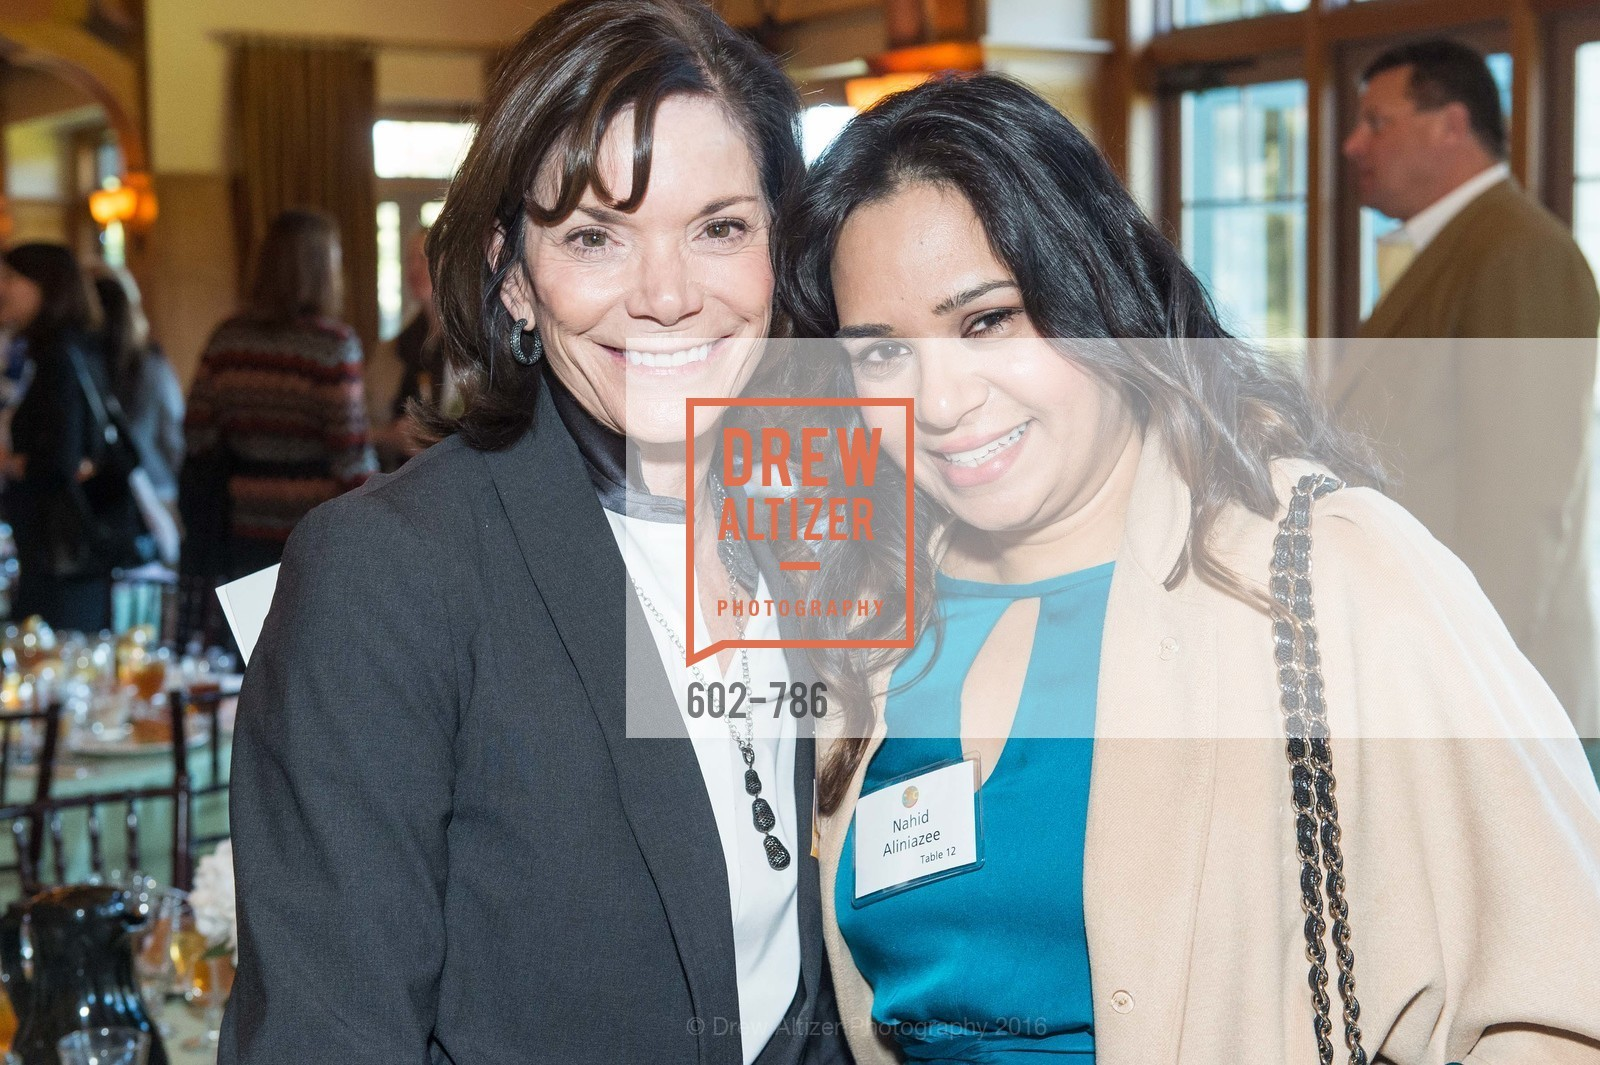 Lisa Mooring, Nahid Aliniazee, The Children's Health Council Breakfast, Sharon Height Golf and Country Club. 900 Sand Hill Rd, February 2nd, 2016,Drew Altizer, Drew Altizer Photography, full-service agency, private events, San Francisco photographer, photographer california